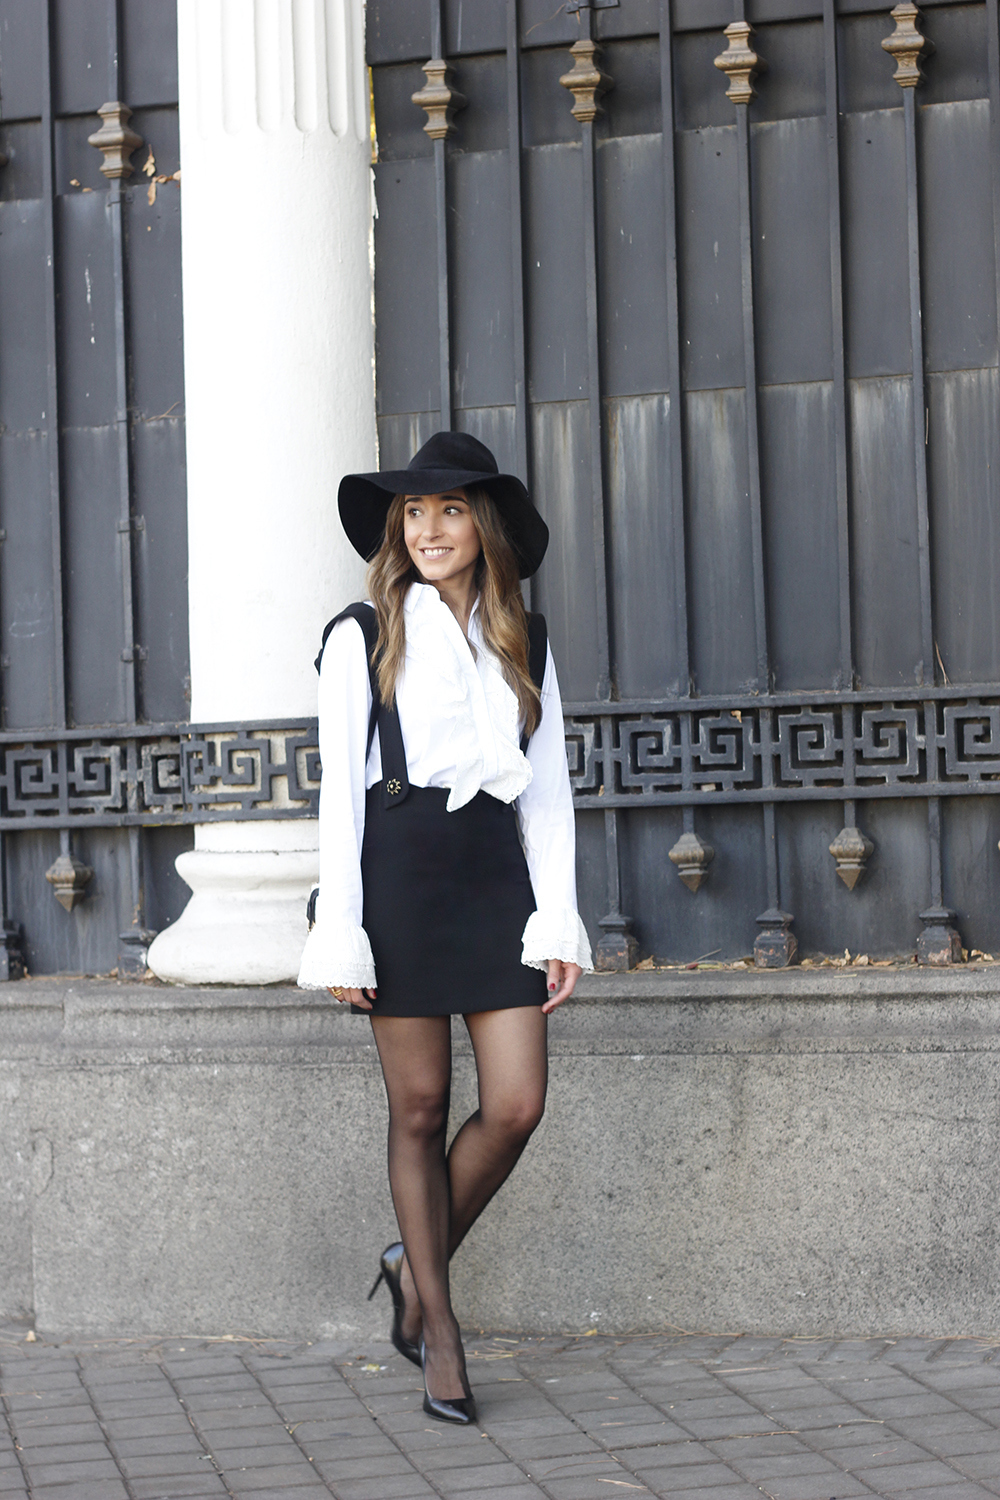 black skirt white shirt black and white outfit trend inspiration hat style fall look blanco y negro02